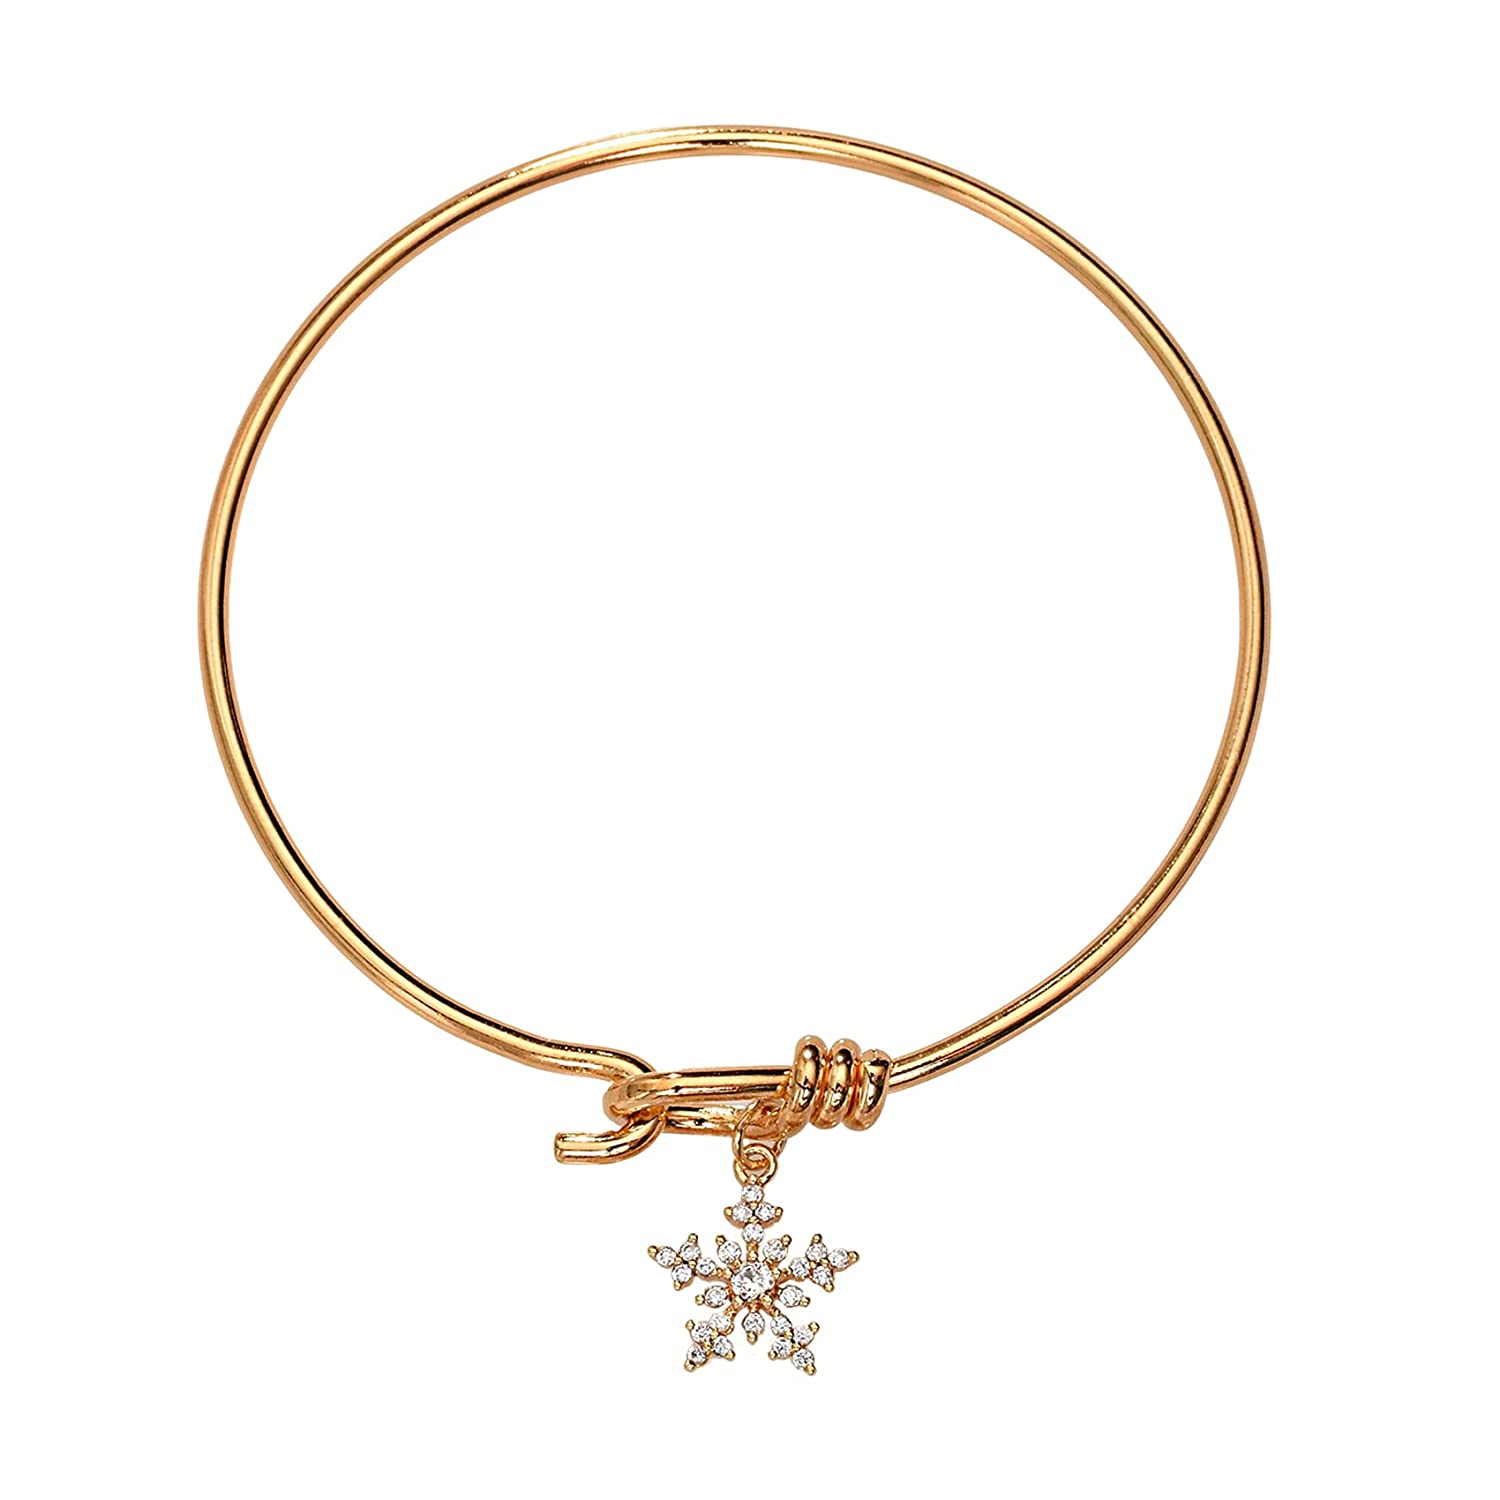 Crystal Special sale item Snowflake Gold-Tone Bangle New Orleans Mall Bracelet Wom for Gift Jewelry